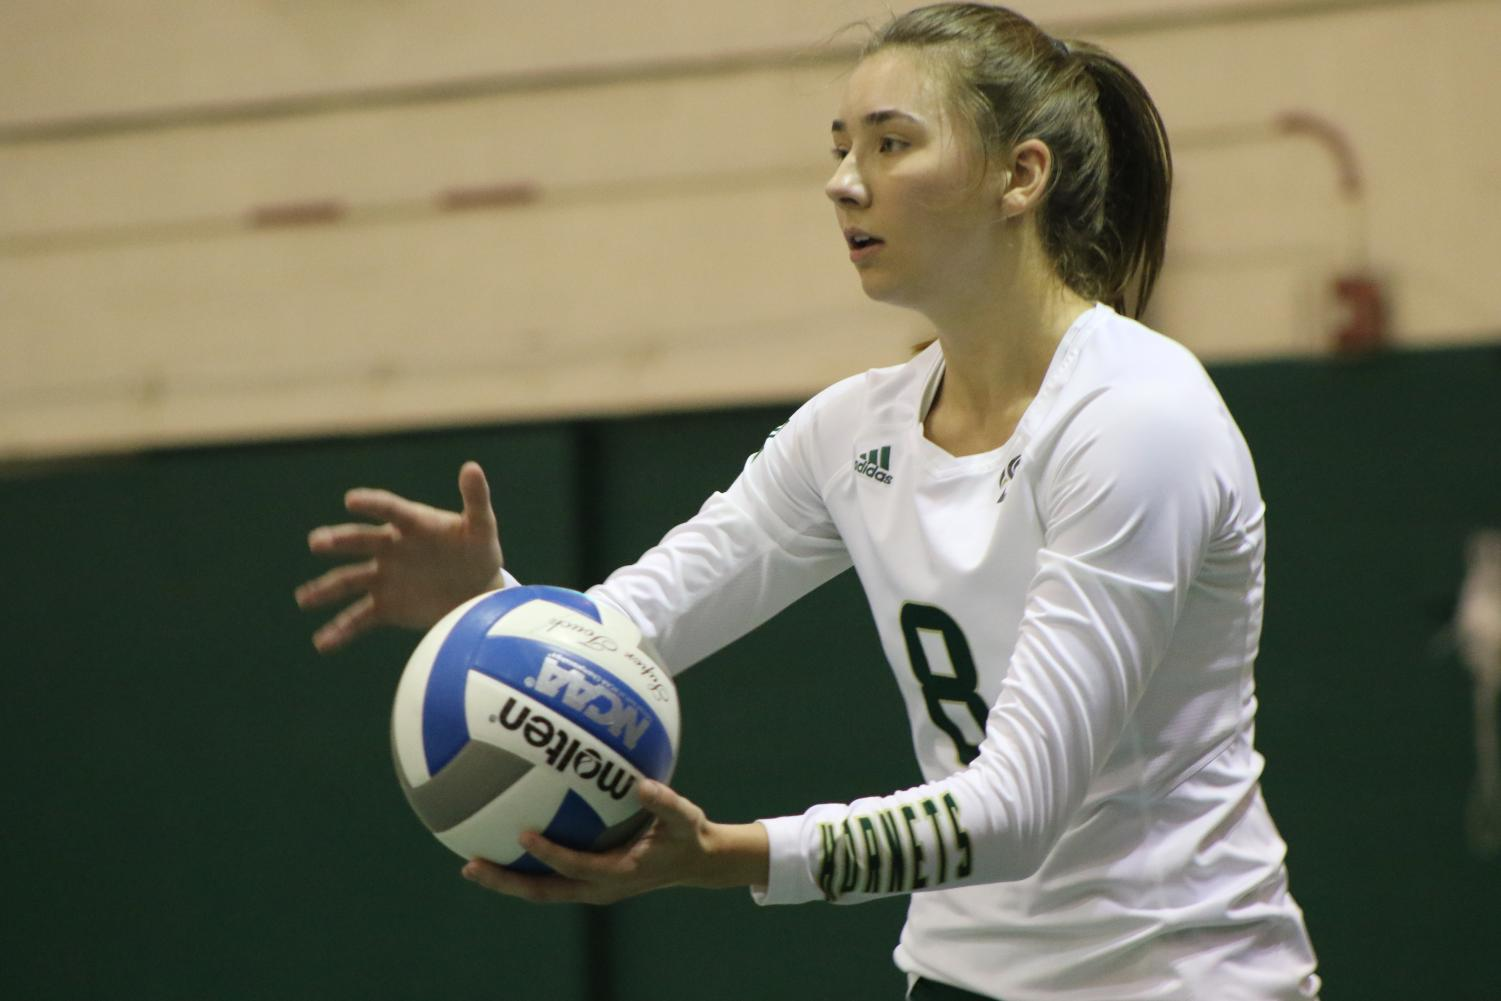 Sac State senior outside hitter Sarah Davis prepares to serve the ball against Northern Colorado Thursday, Oct. 17 at The Nest. Davis had a game-high 20 kills in the loss to the Bears.